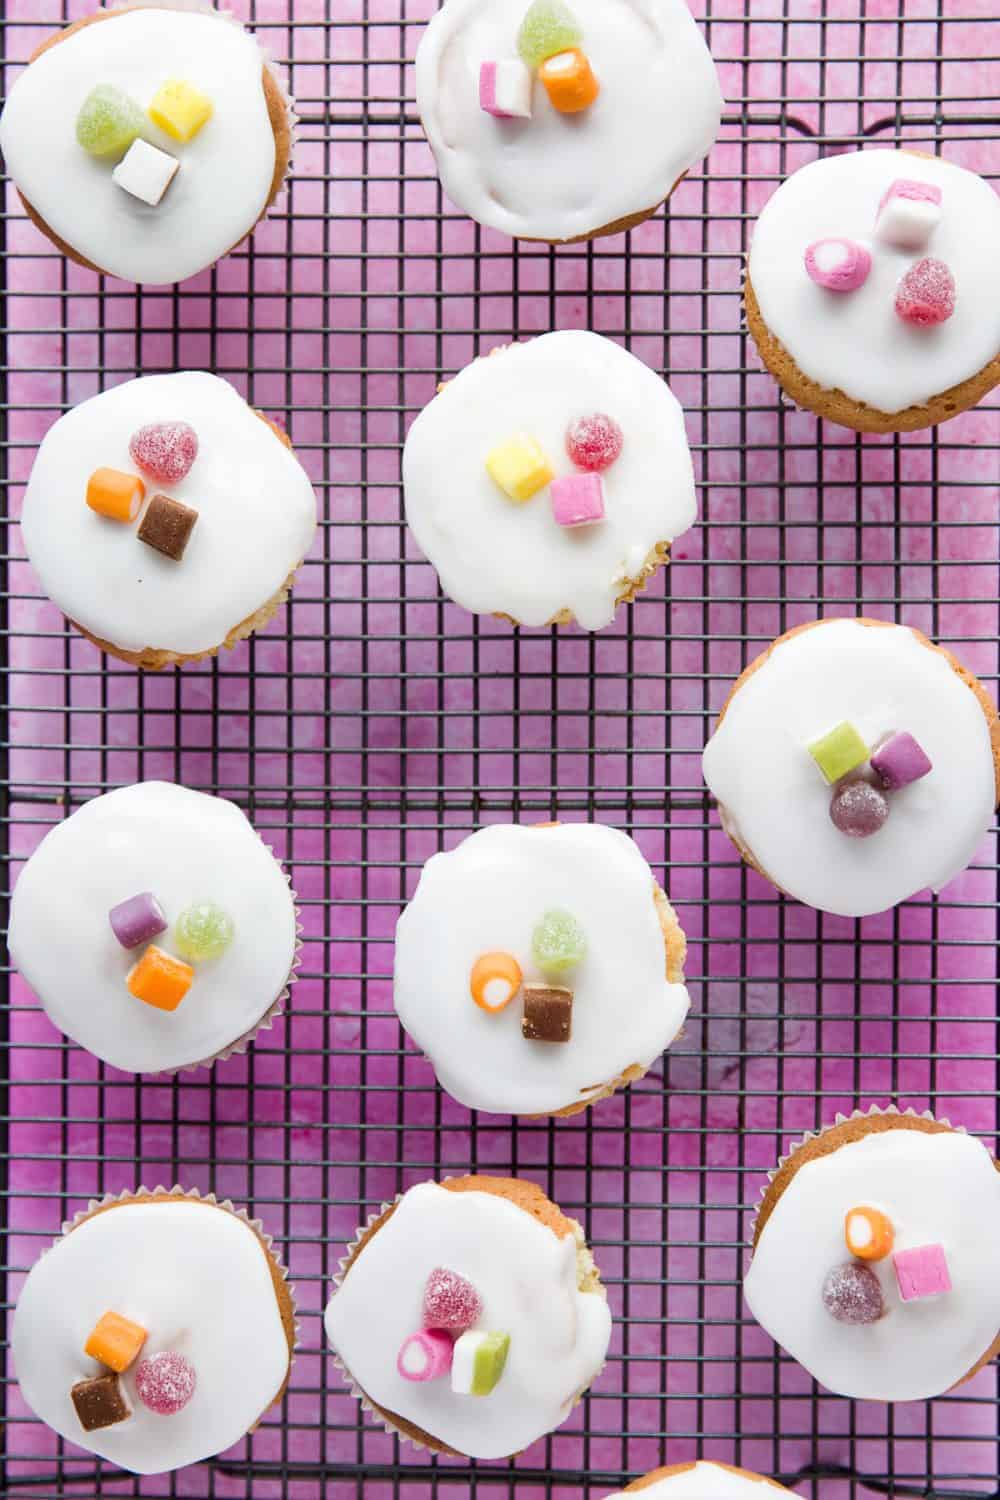 A cooling rack with fairy cakes on top of it.